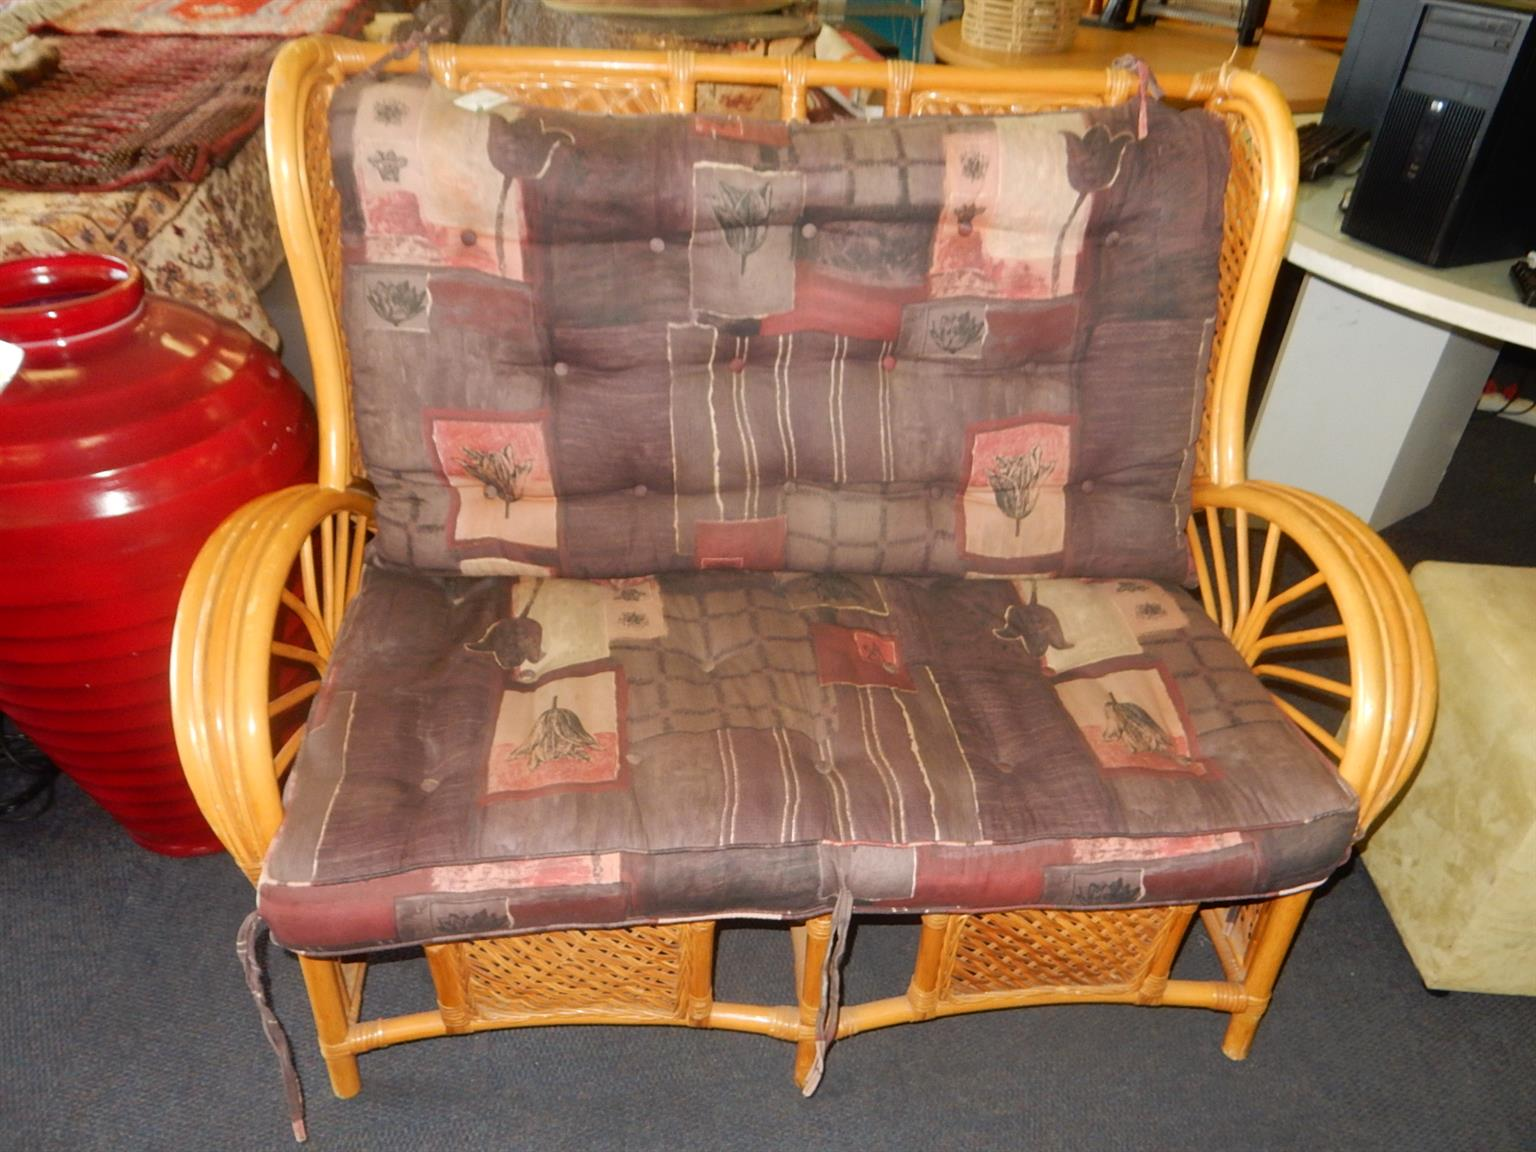 2 Seater Rottang Chair